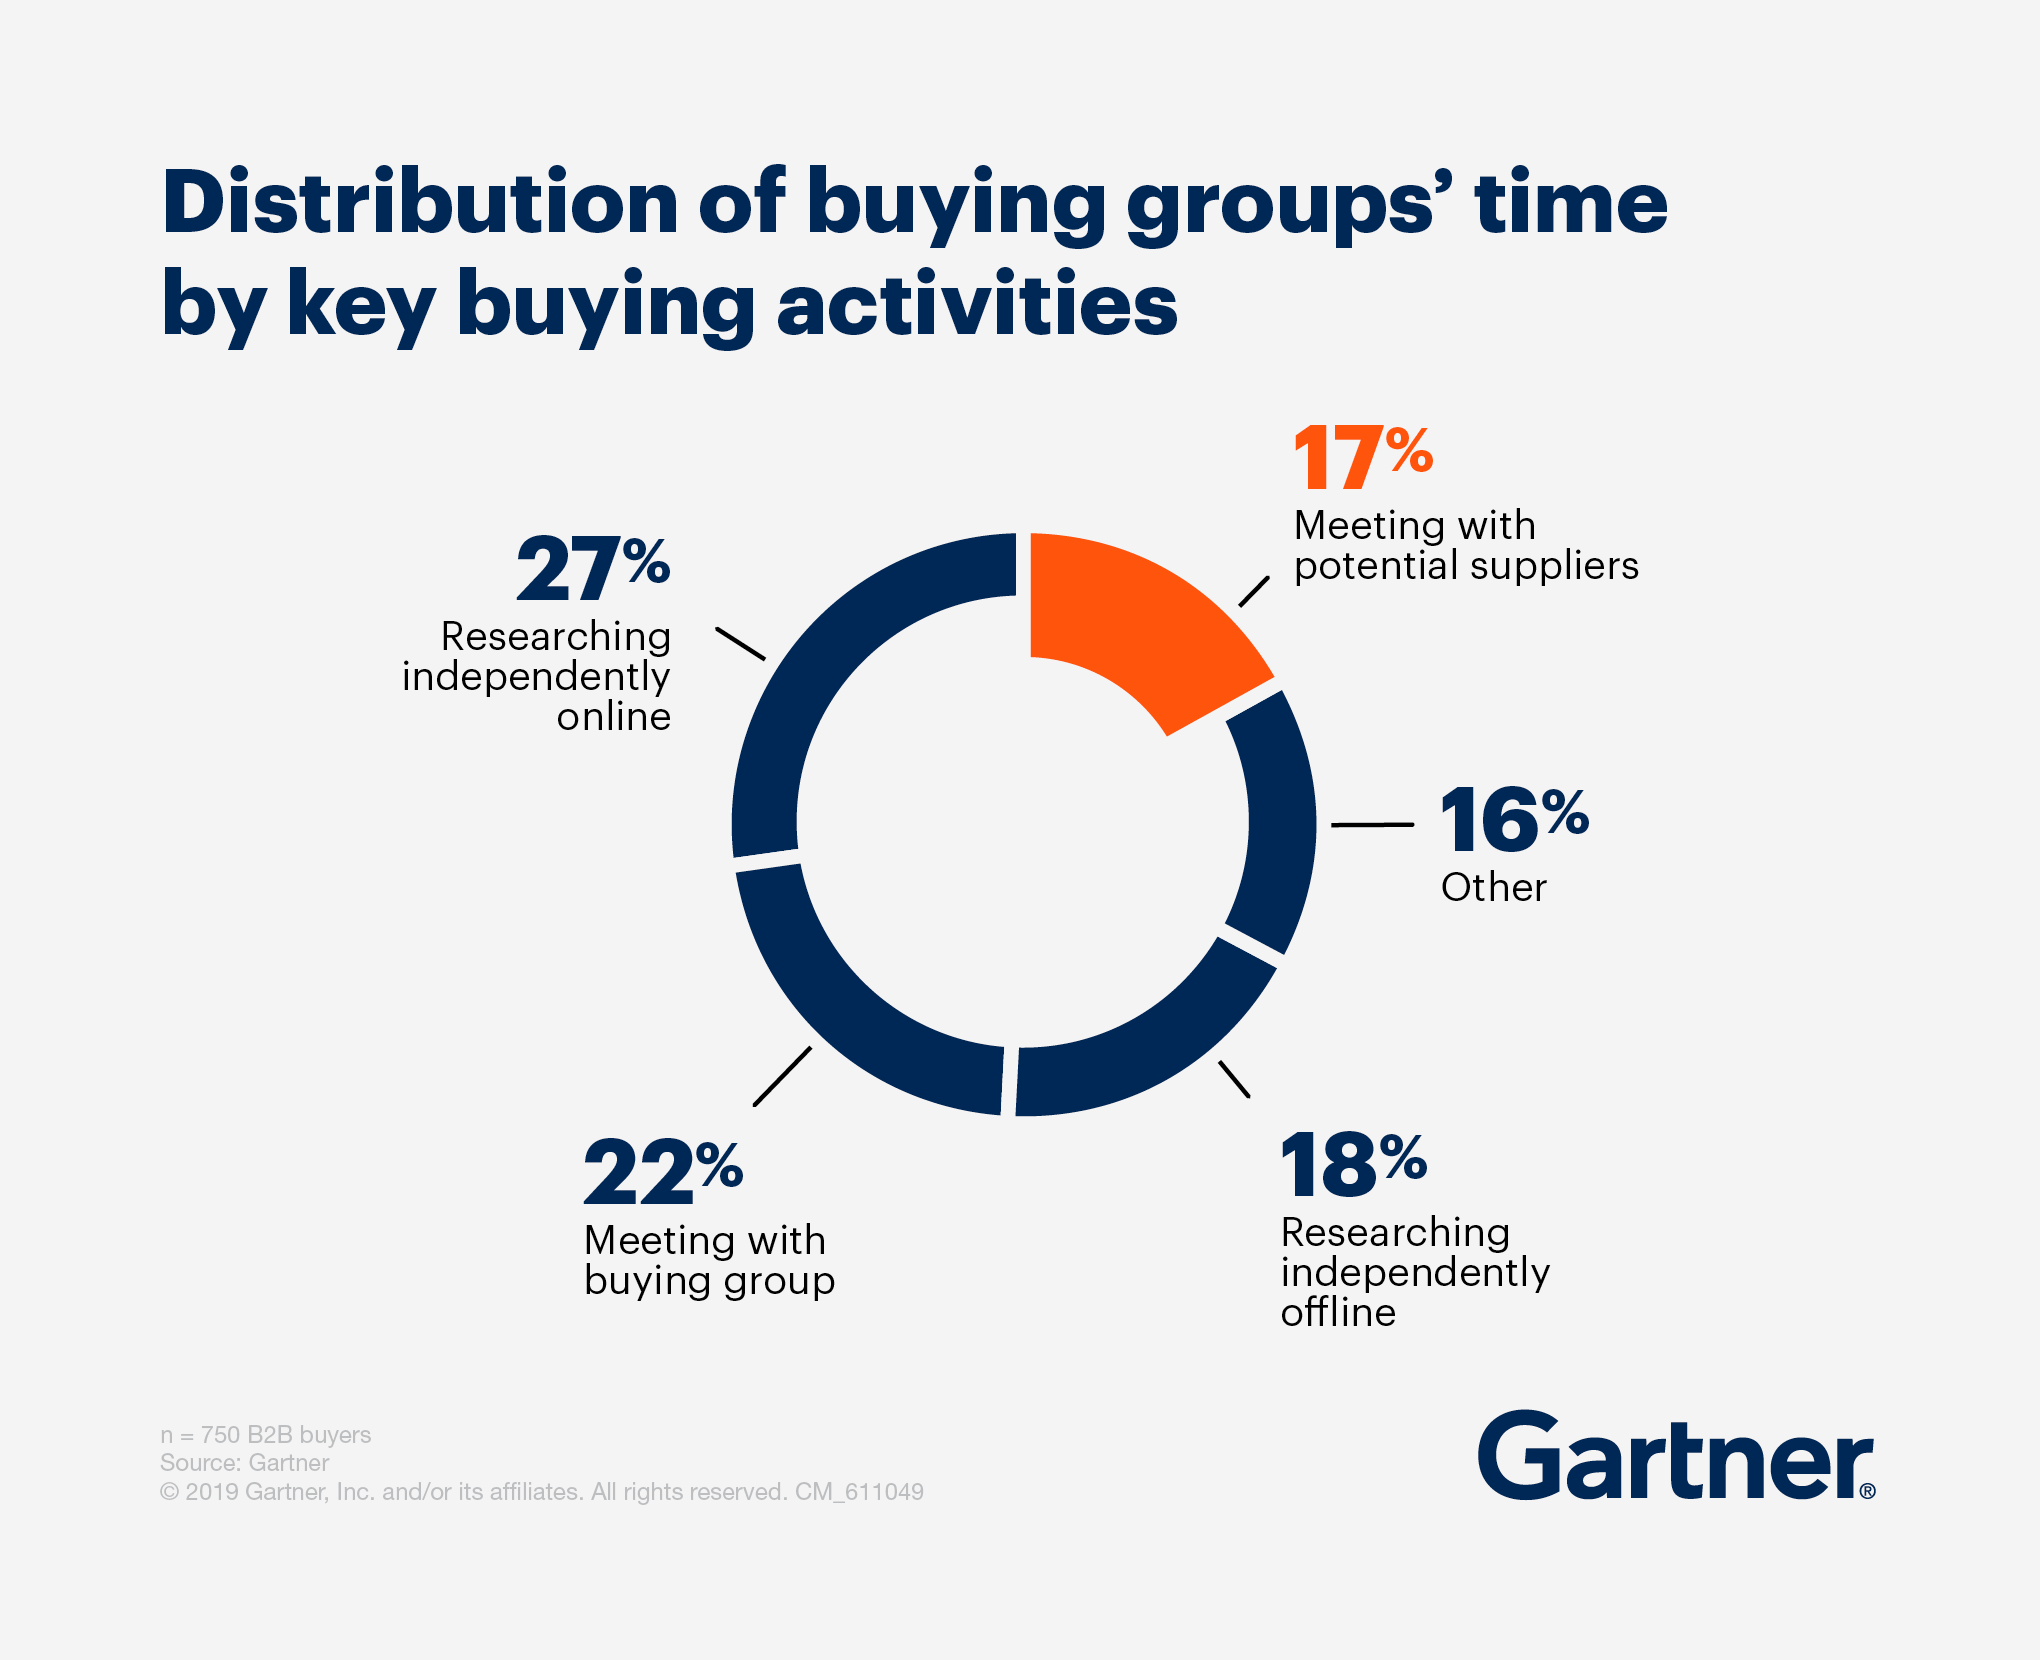 Pie chart showing distribution of buying groups' time by key buying activities.